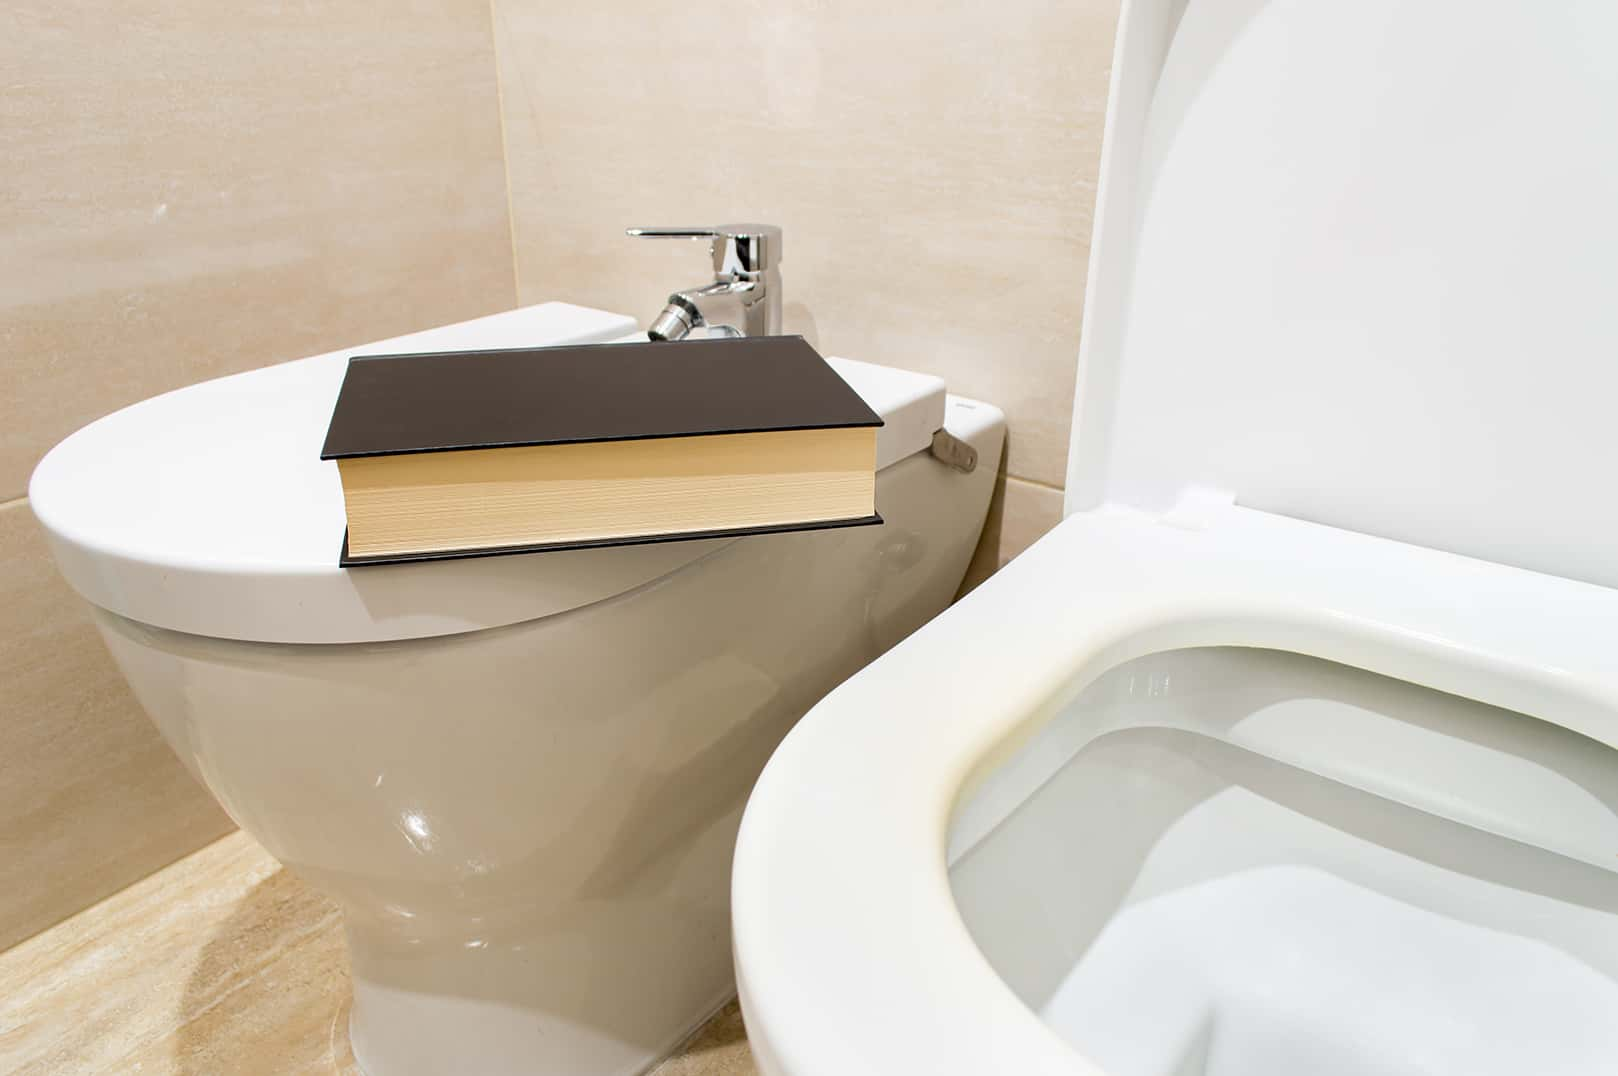 books don't belong in the bathroom